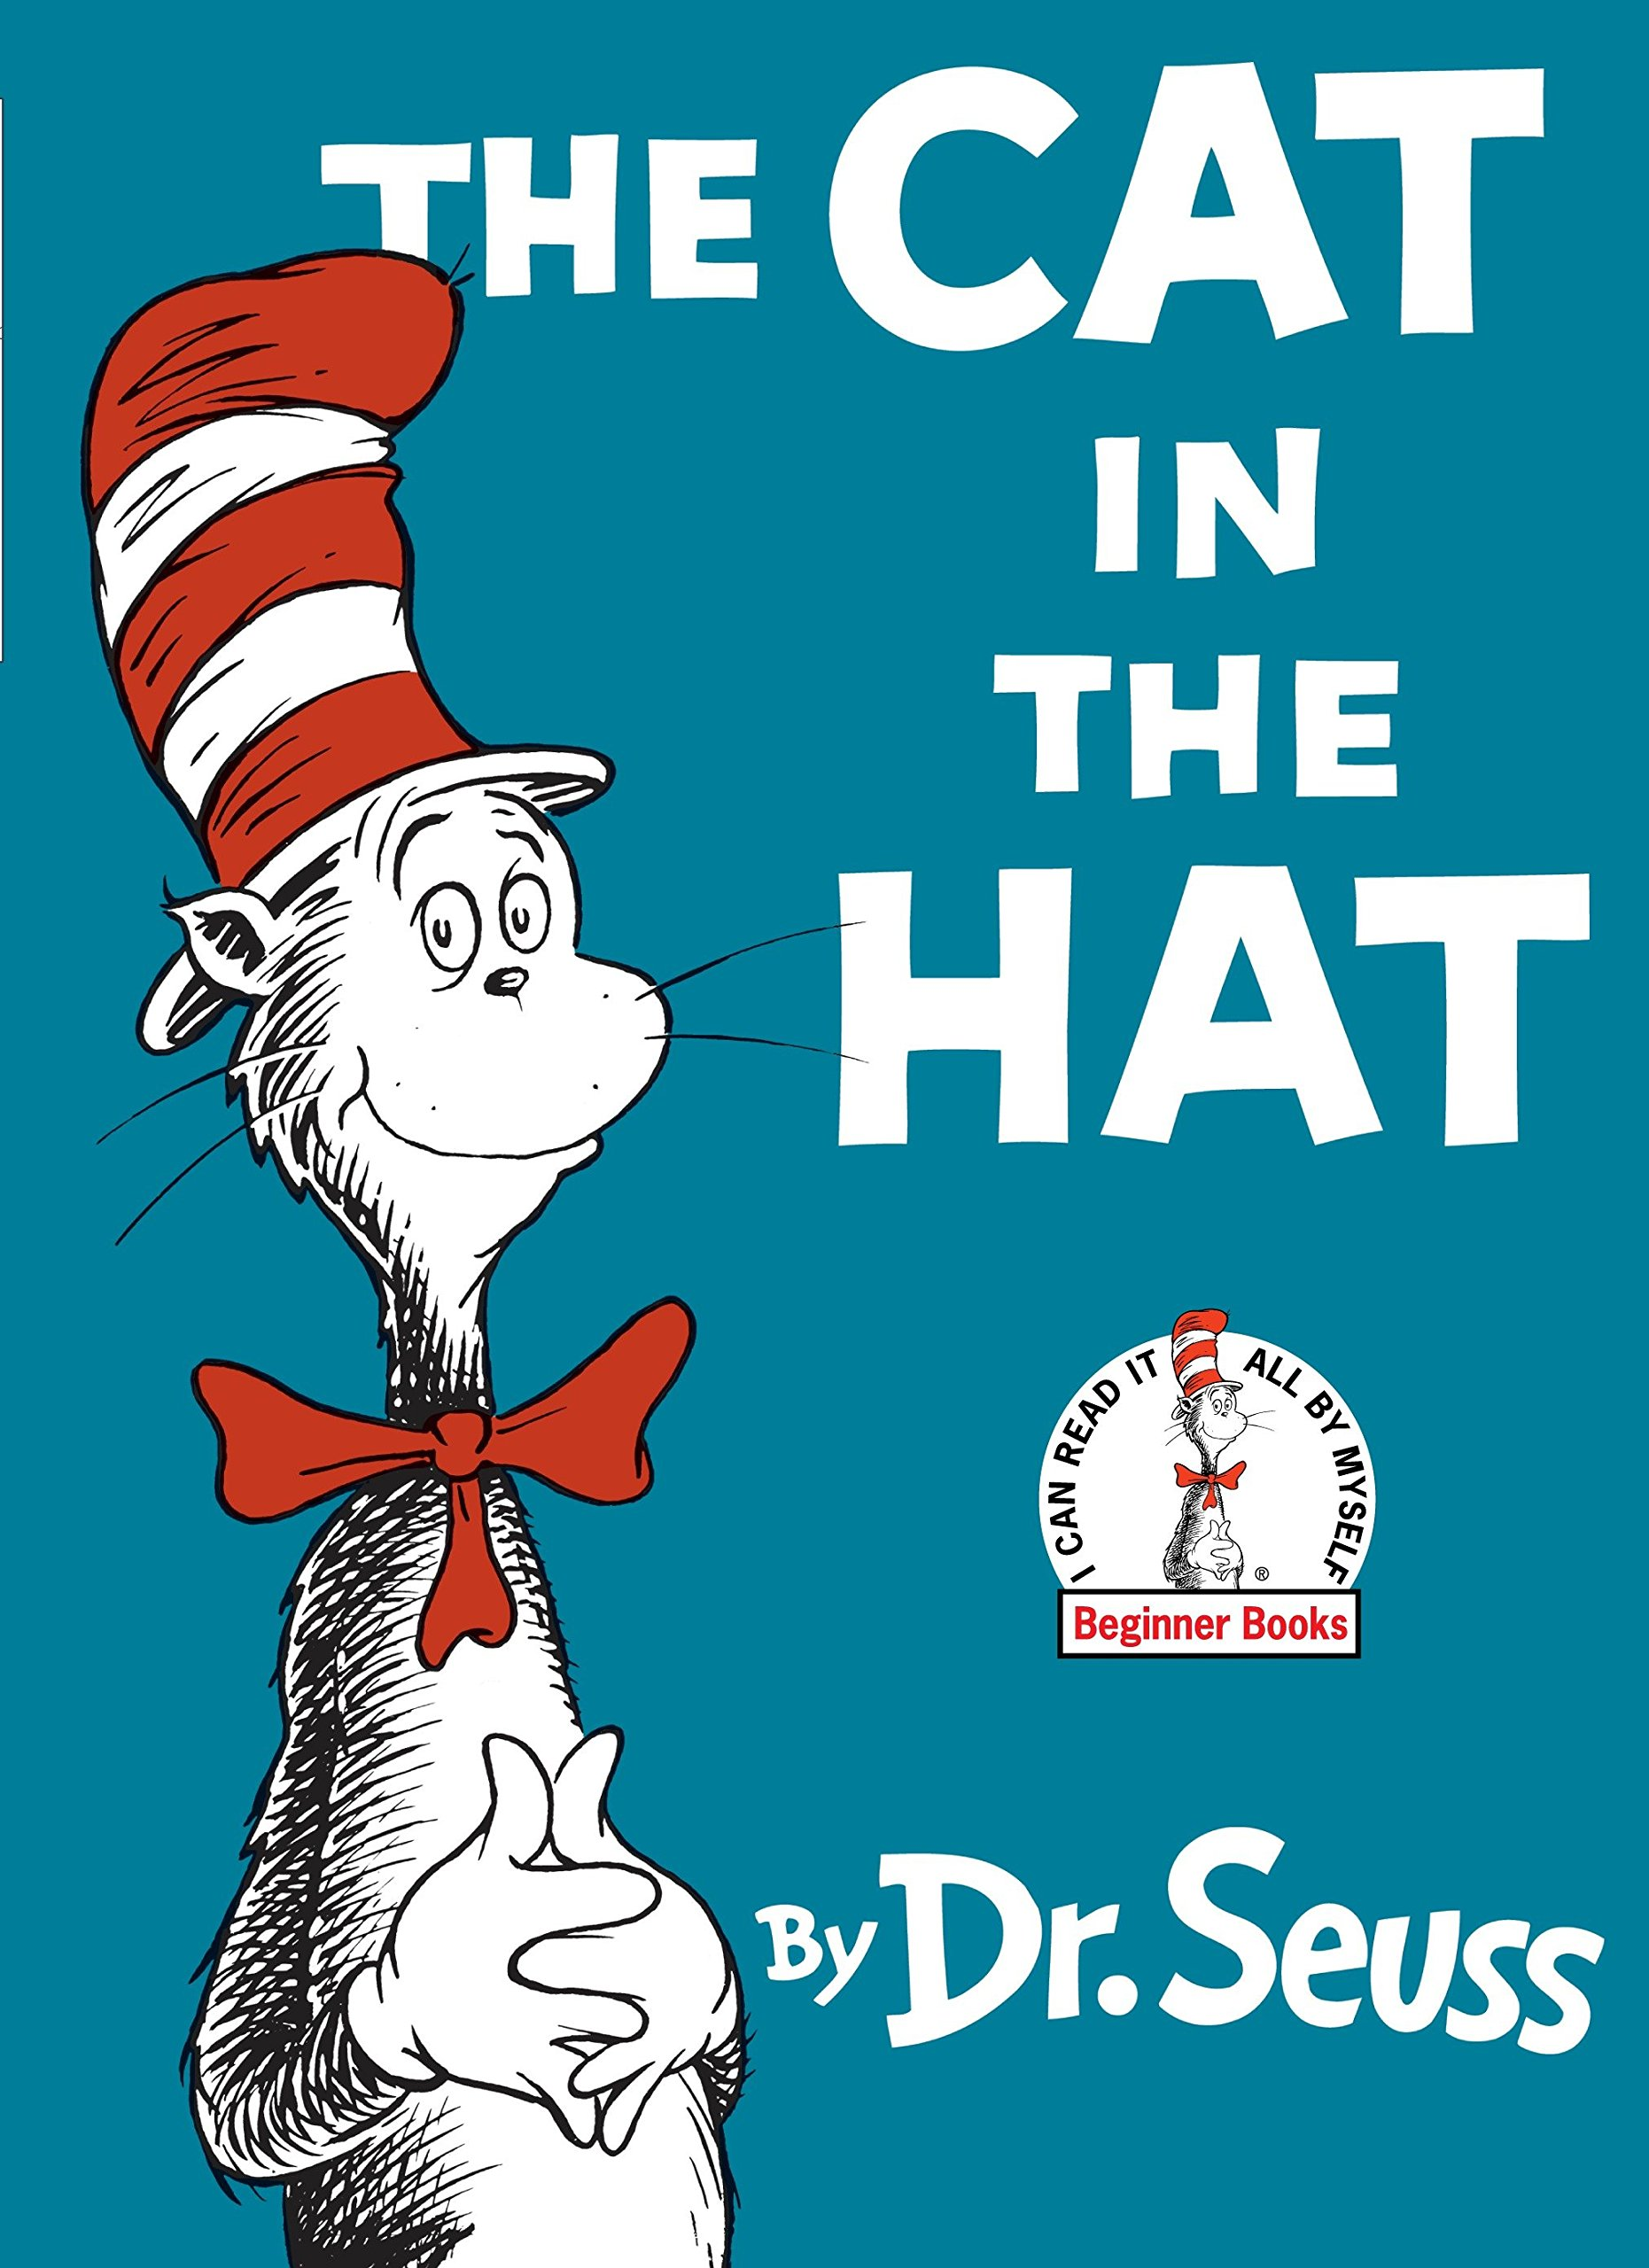 dr.seuss - books - best toys for 3 year olds.jpg